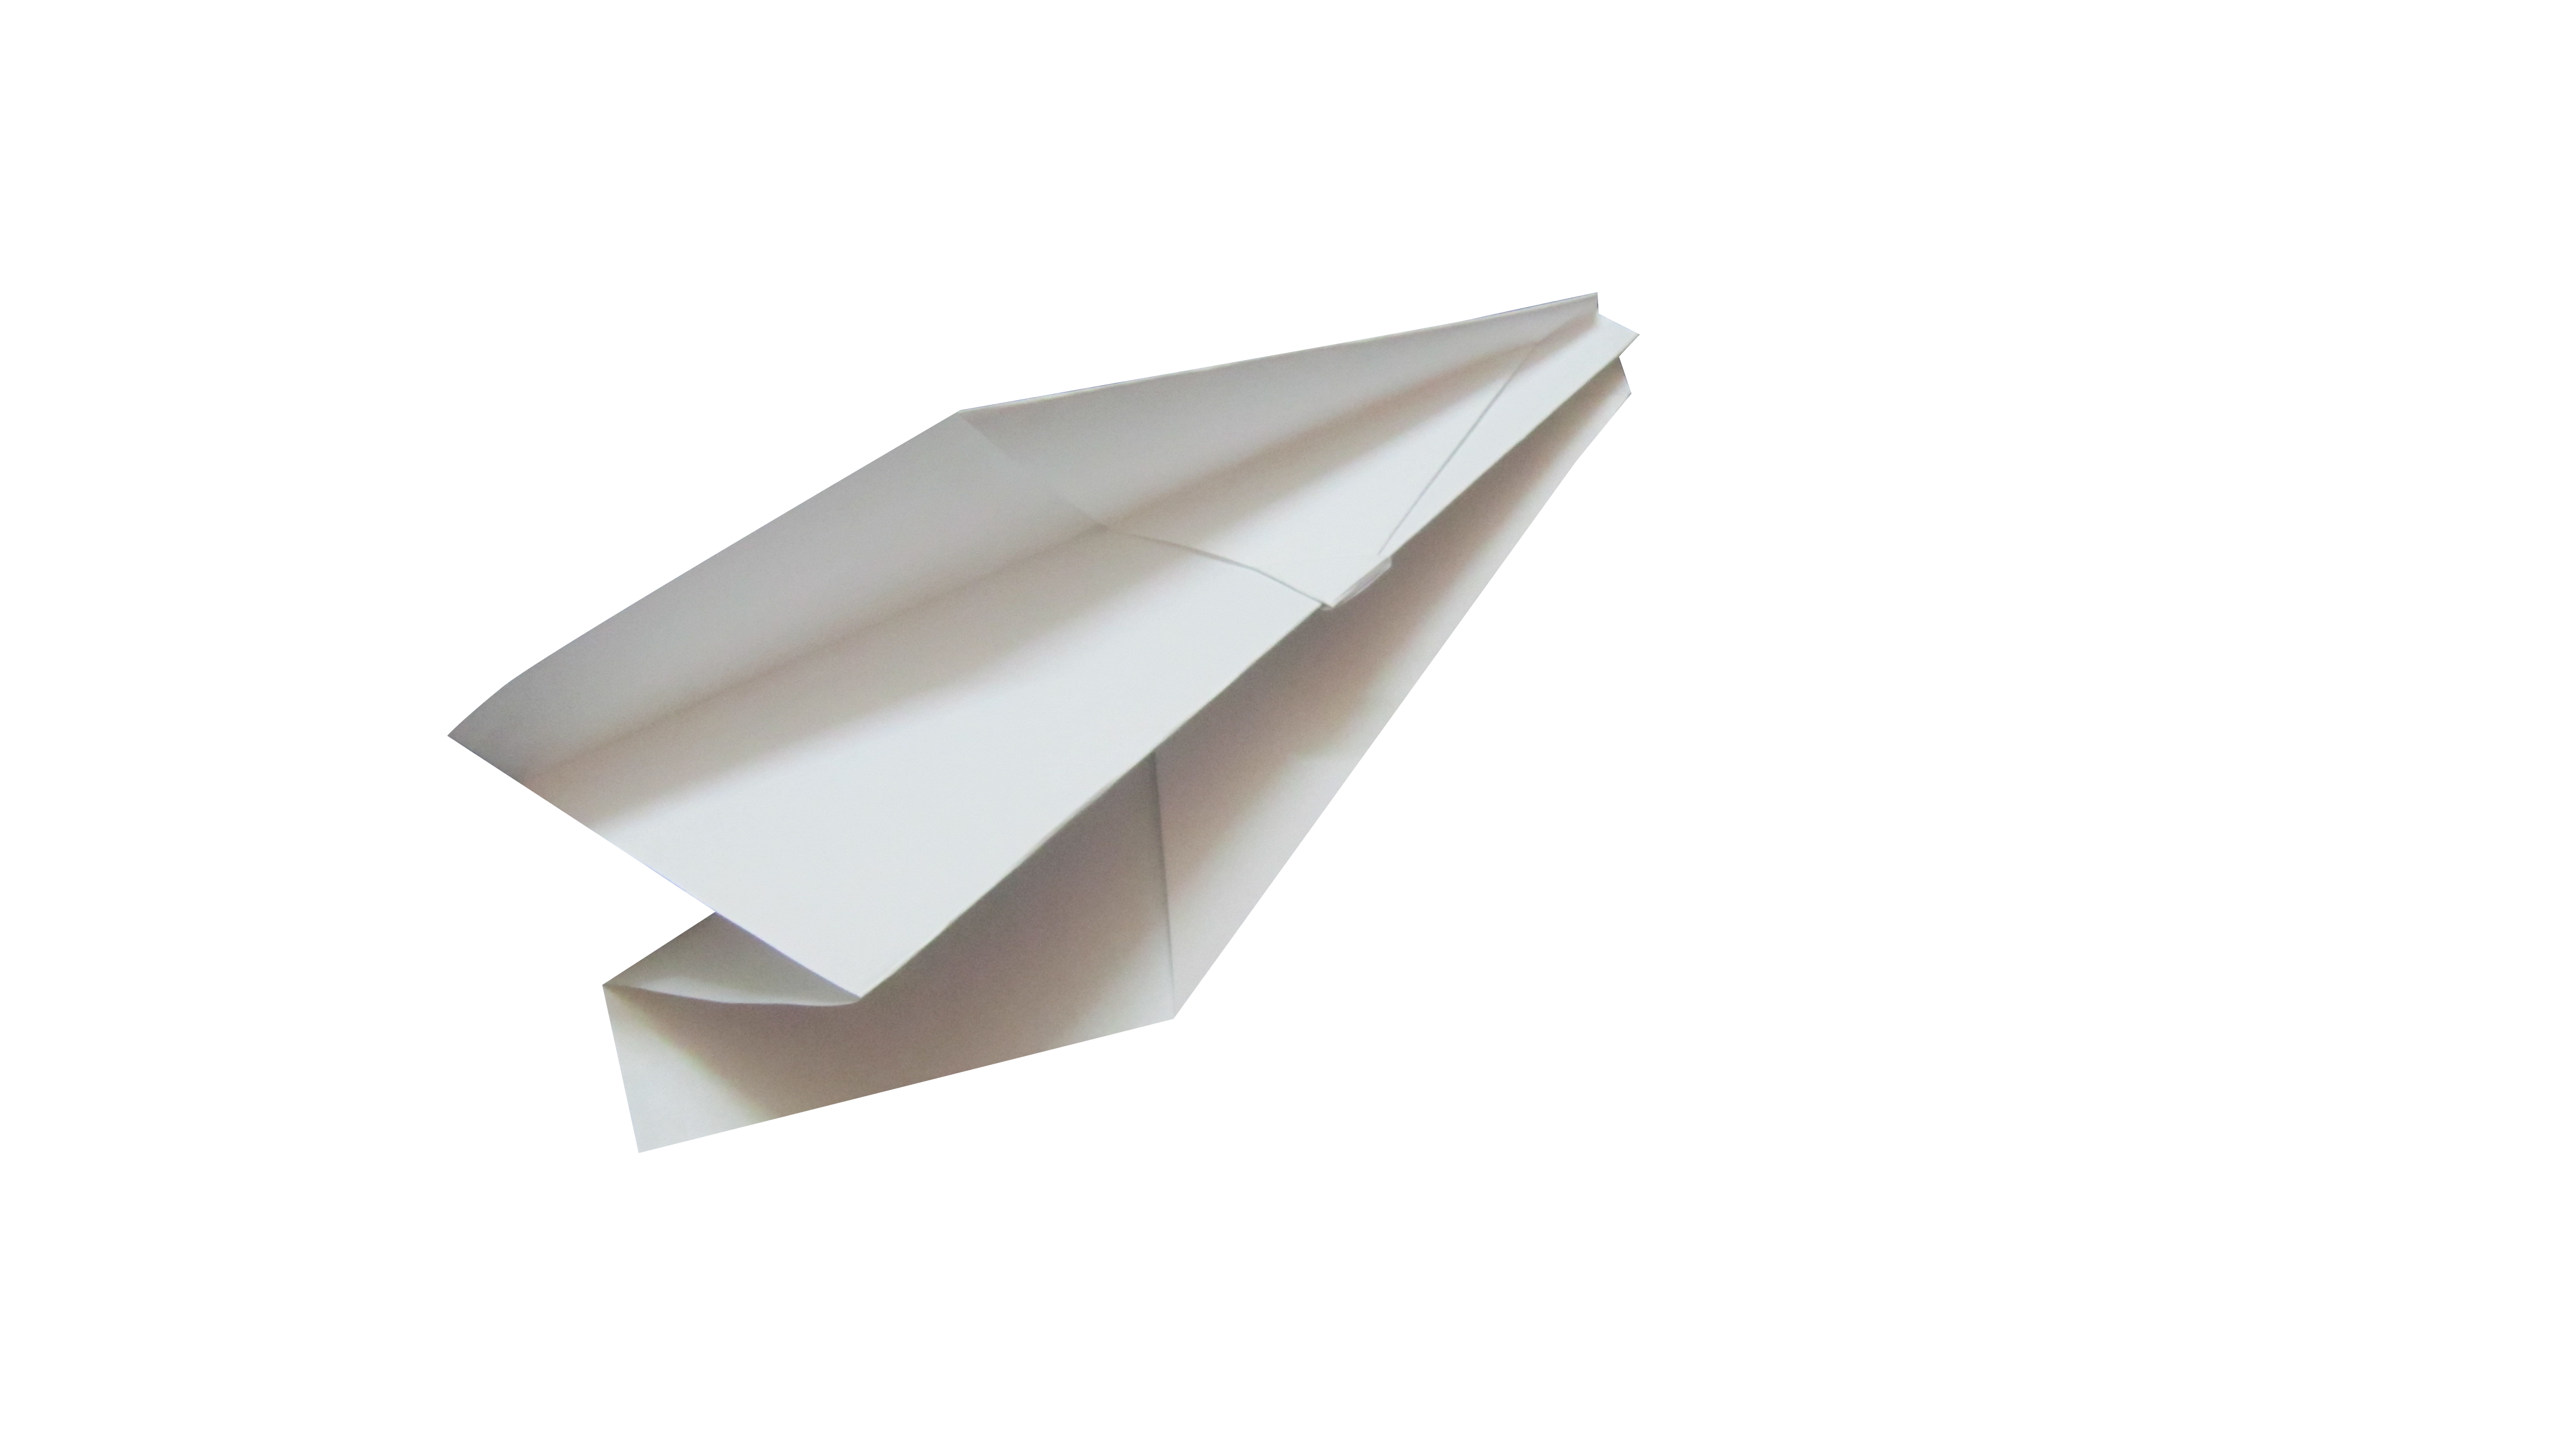 paper to buy Buy cheap and quality paper for office and home our most popular paper is 80gsm a4 printer paper find photo paper, a1, a3, a5 paper, xerox, hp, canon, 5 star.